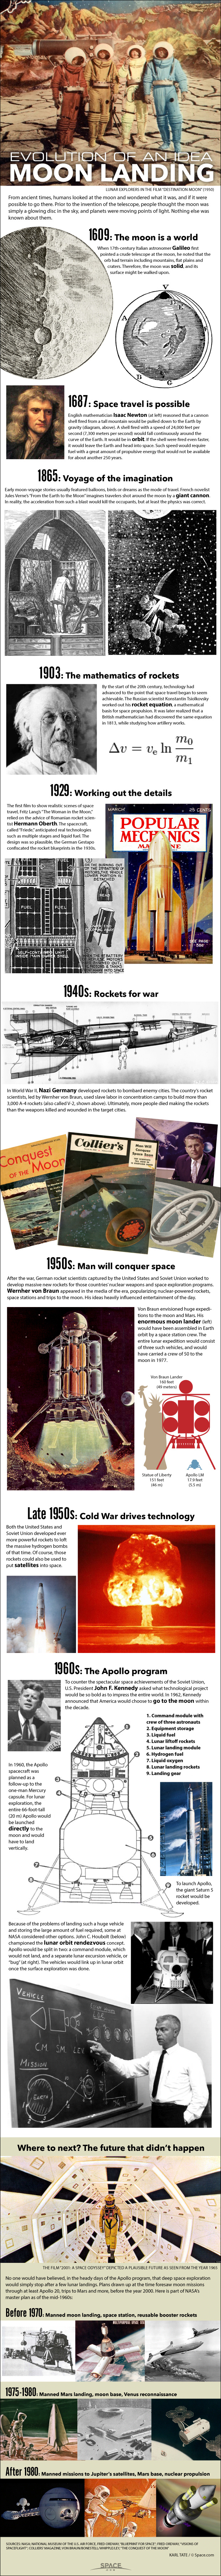 Destination Moon: The 350-Year History of Lunar Exploration (Infographic)